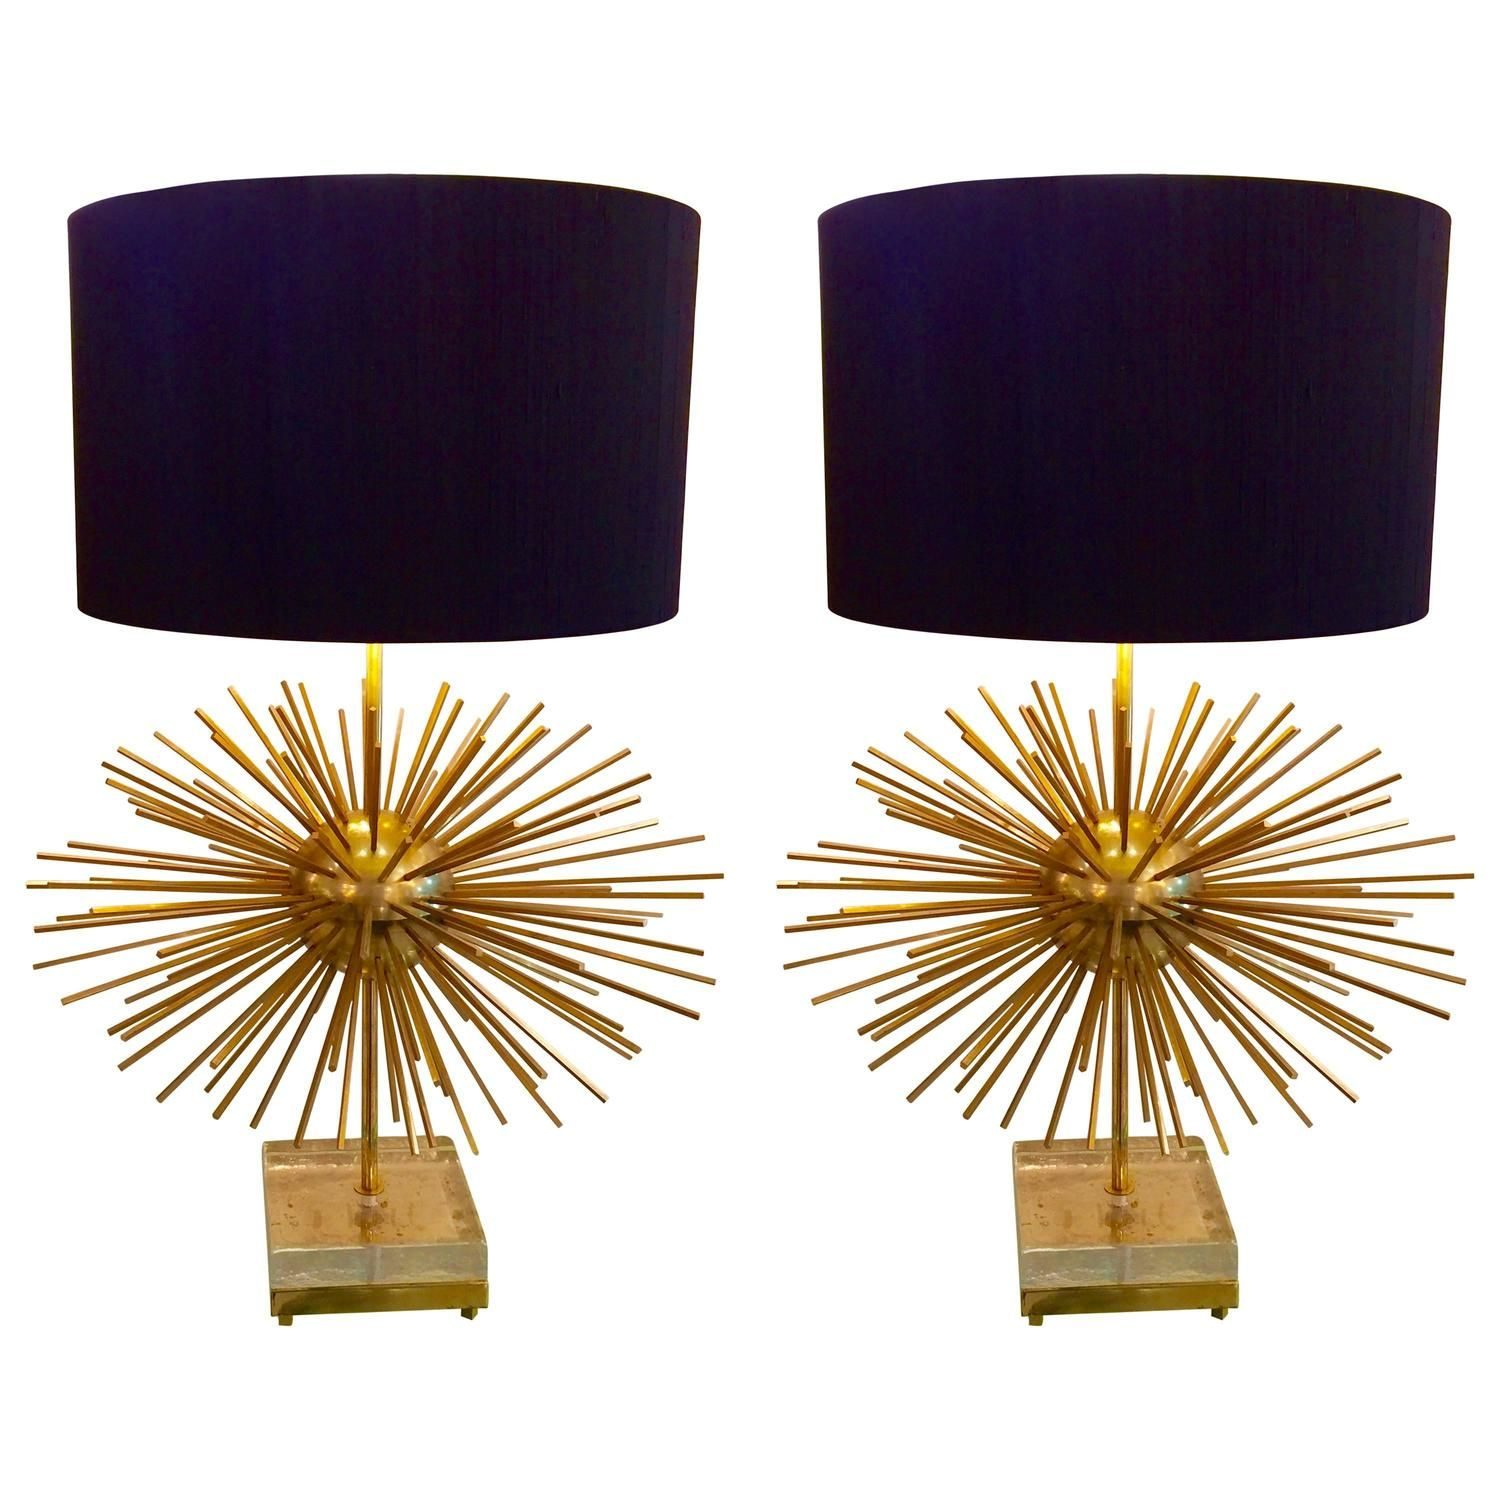 Pair of Big Sputnik Murano Lamps | From a unique collection of antique and modern table lamps at https://www.1stdibs.com/furniture/lighting/table-lamps/